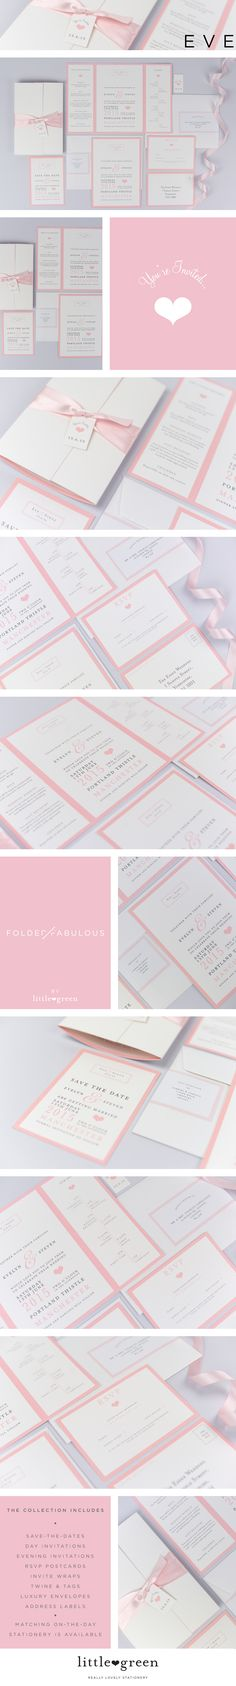 Wedding Invitation - Enjoy Your Wedding Day With These Simple Steps >>> Click image for more details. Handmade Wedding Invitations, Save The Date Invitations, Wedding Stationary, Wedding Favours, Wedding Cards, Wedding 2017, Diy Wedding, Wedding Planner, Dream Wedding